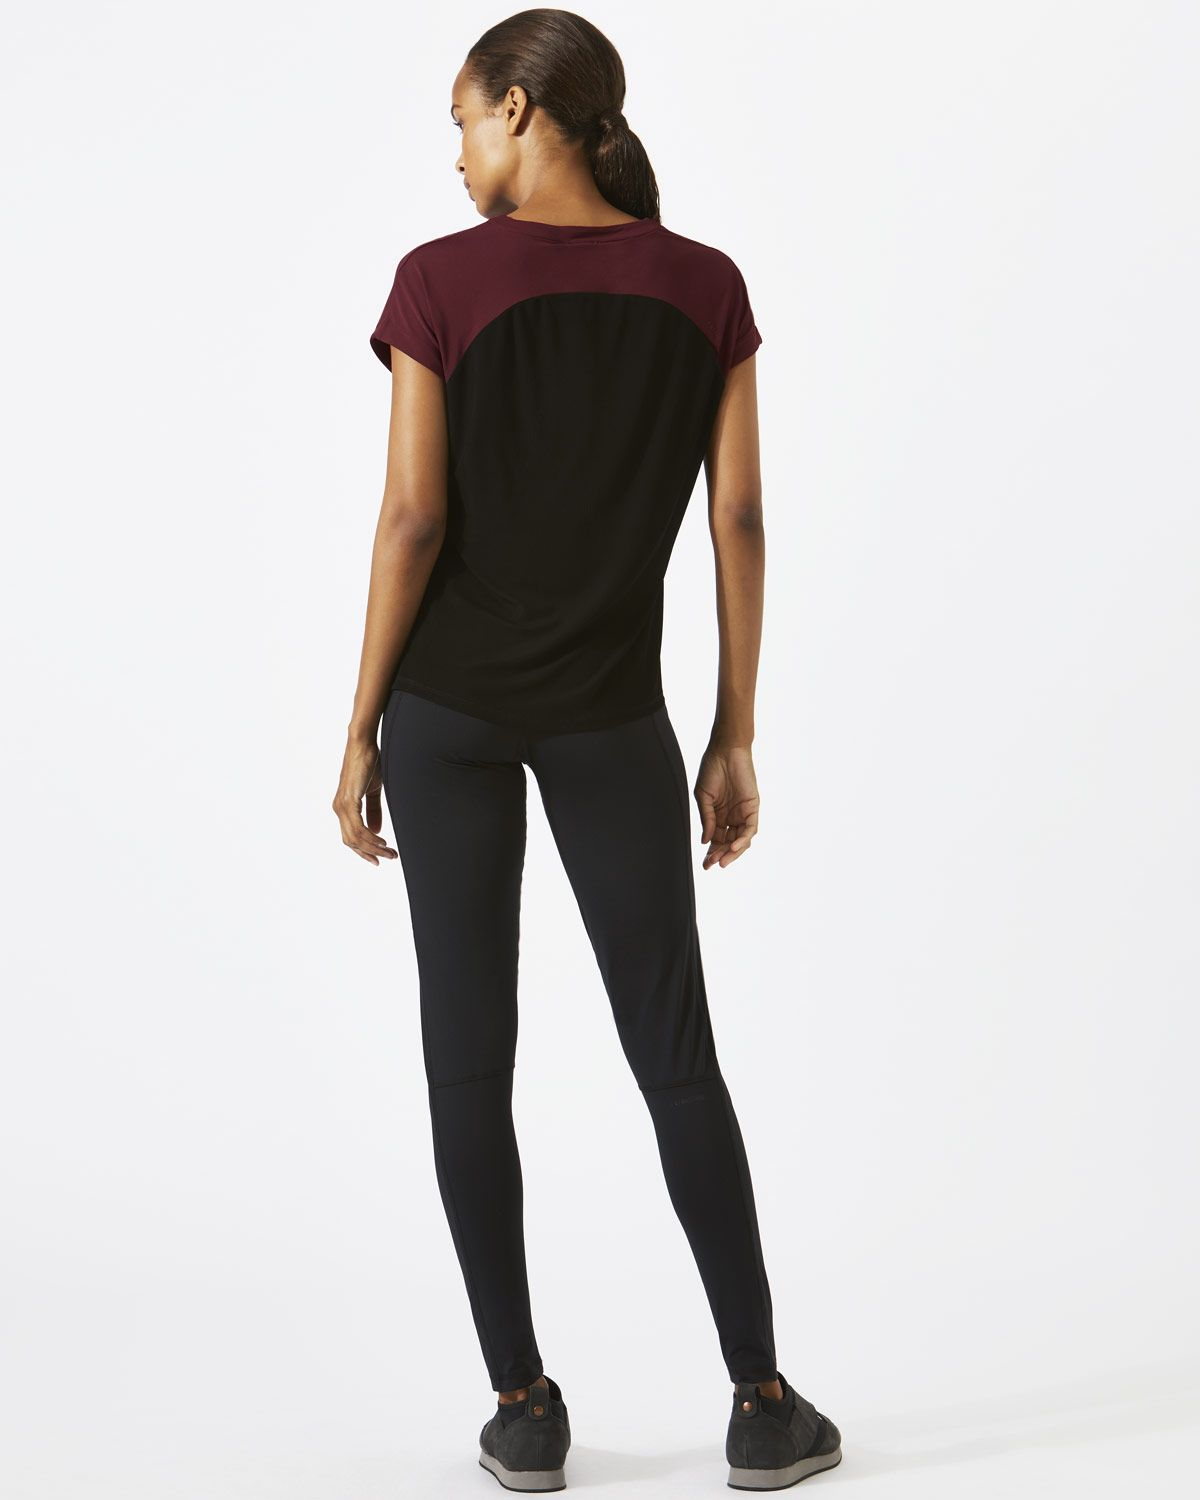 Seam Detail Legging